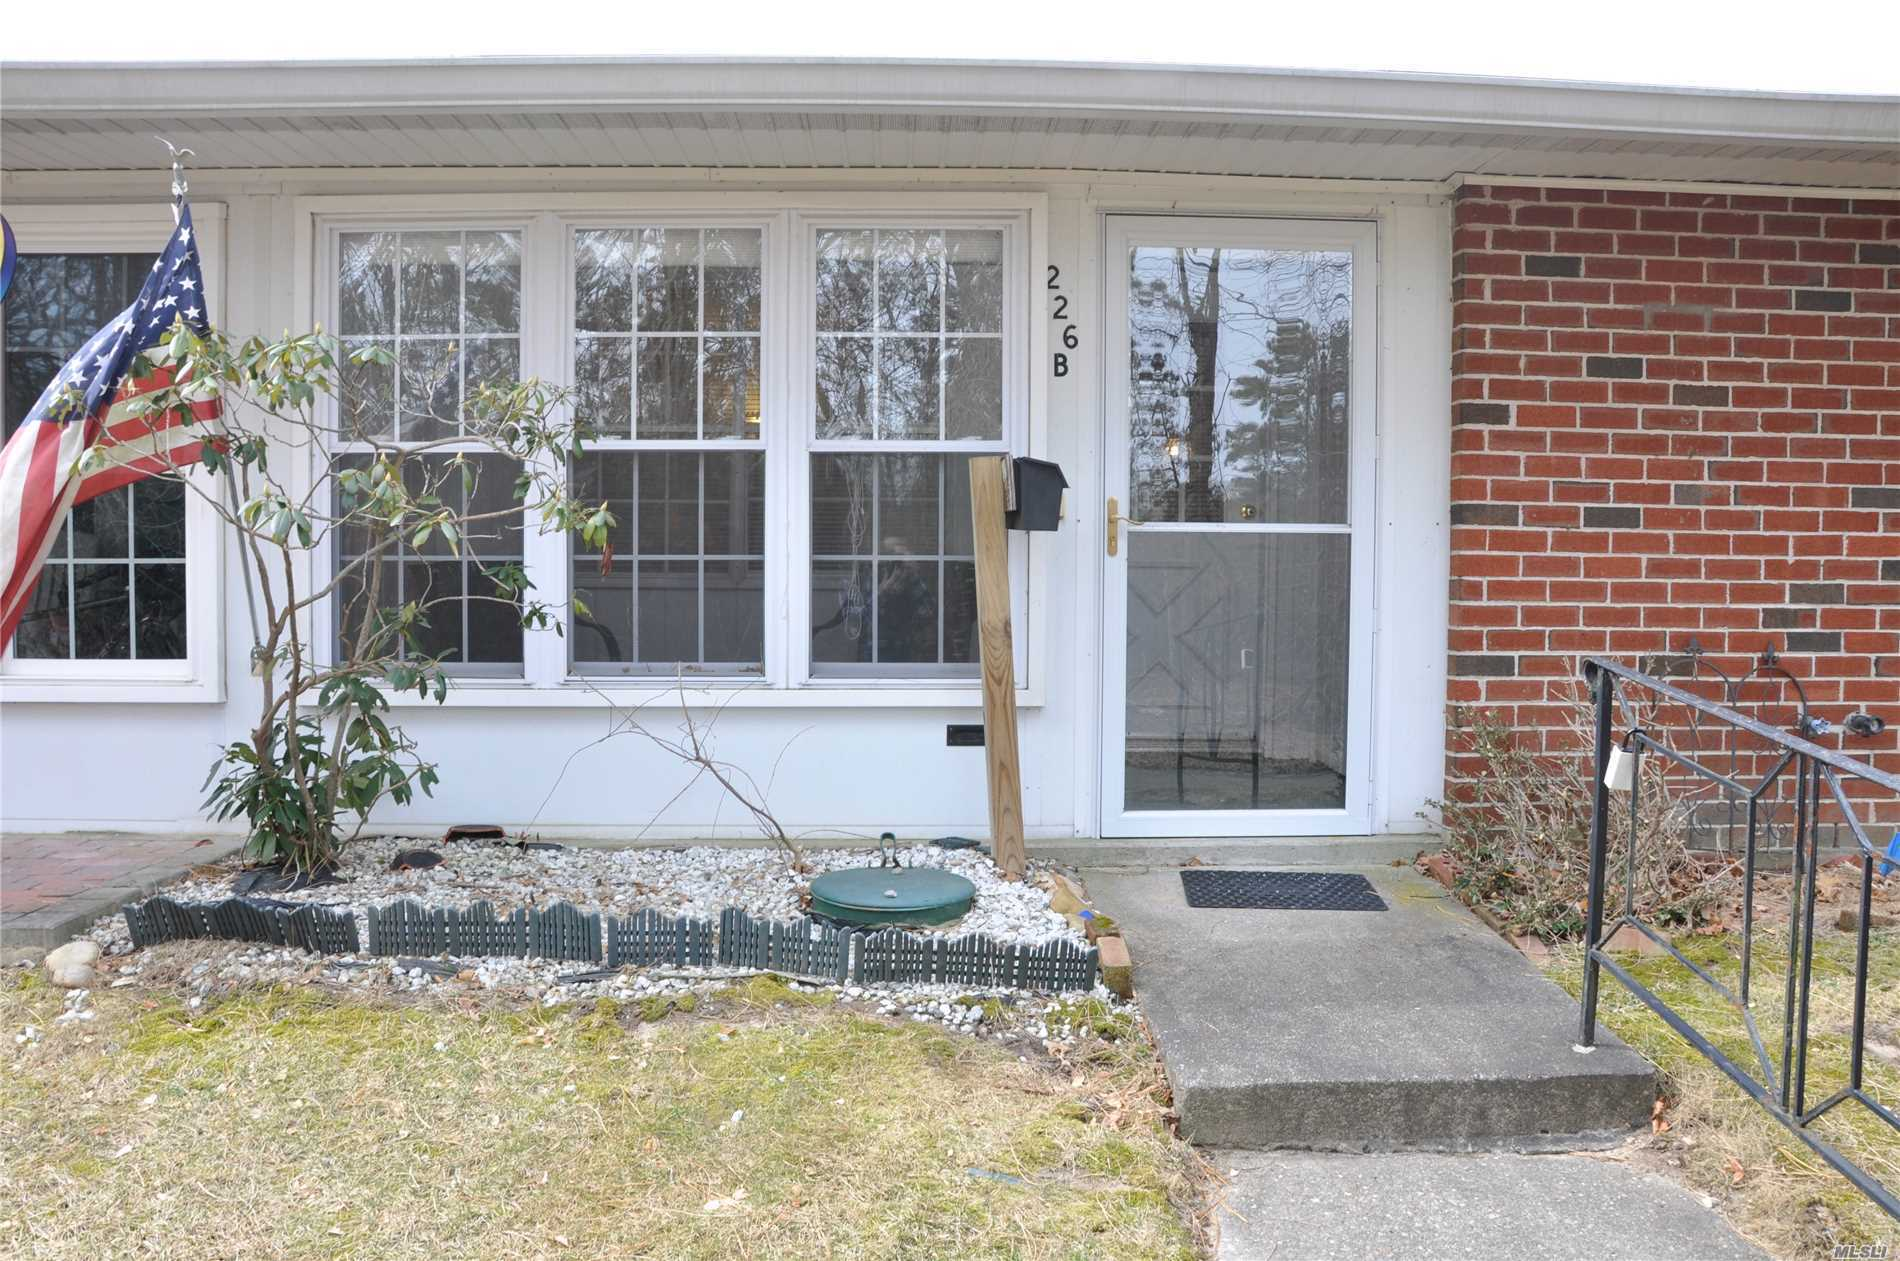 Clean & Bright 1 Bedroom/1 Bath Eton Model Unit in 55+ Leisure Village in Ridge! Enclosed Sun Porch Overlooking Wooded Area, Living Room, Dining Area, Large Master, Plenty of Storage, Laundry in Unit. Updated CAC, Windows & Hot Water Heater! Enjoy all Leisure Village has to offer!